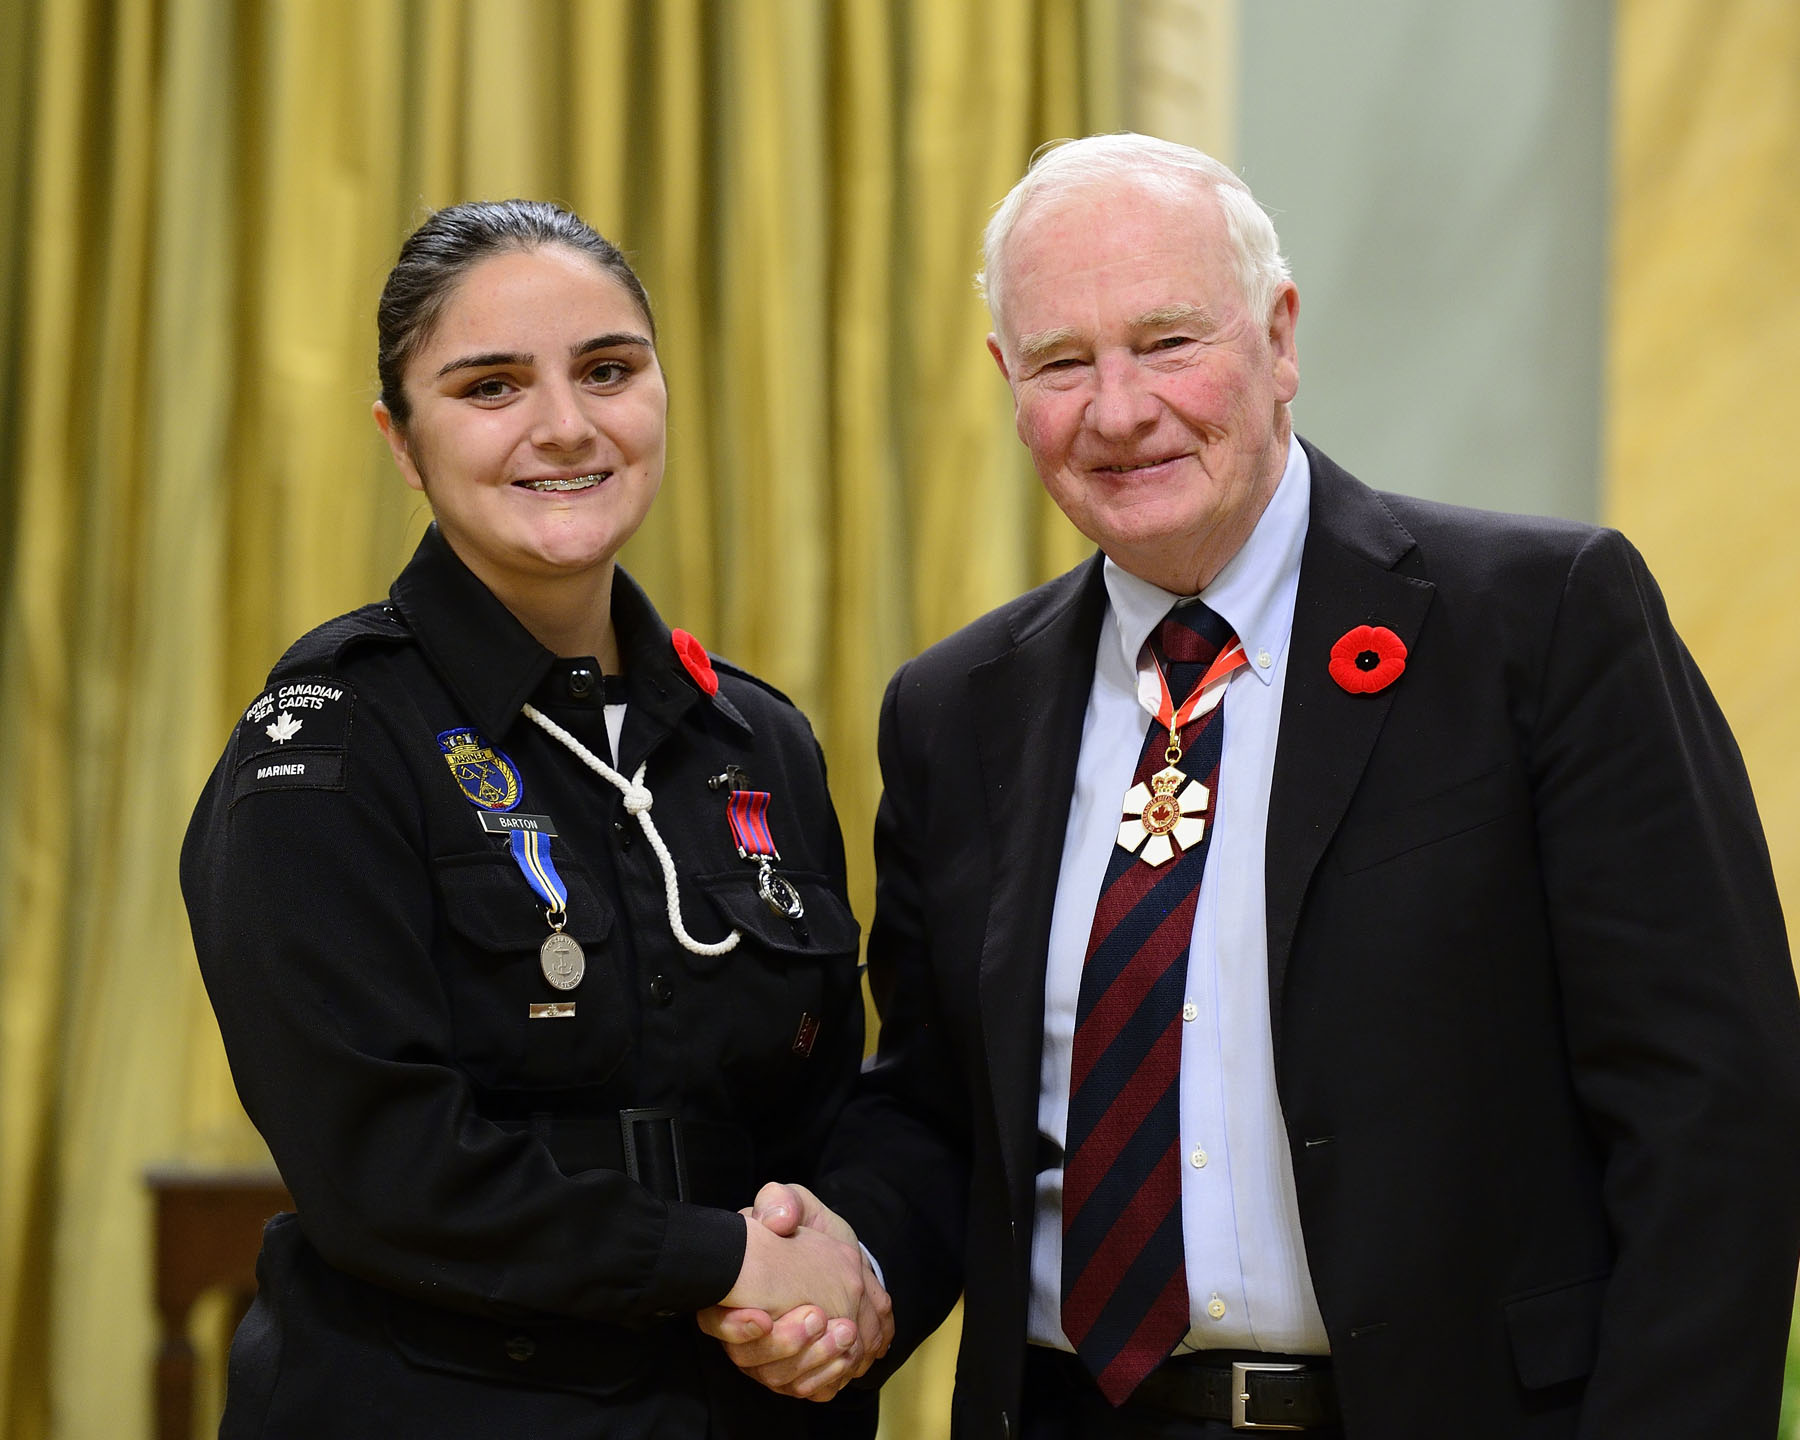 On September 29, 2013, Cadet Master Seaman Kristianna Barton, M.B., rescued a man who was in danger of drowning after he had fallen off a dock into Gull Lake, north of Kaladar, Ontario. Ms. Barton jumped into the cold water and made her way out to the victim, who could not swim. The man panicked and pushed Ms. Barton under the water several times, but she still managed to bring him back to the dock.